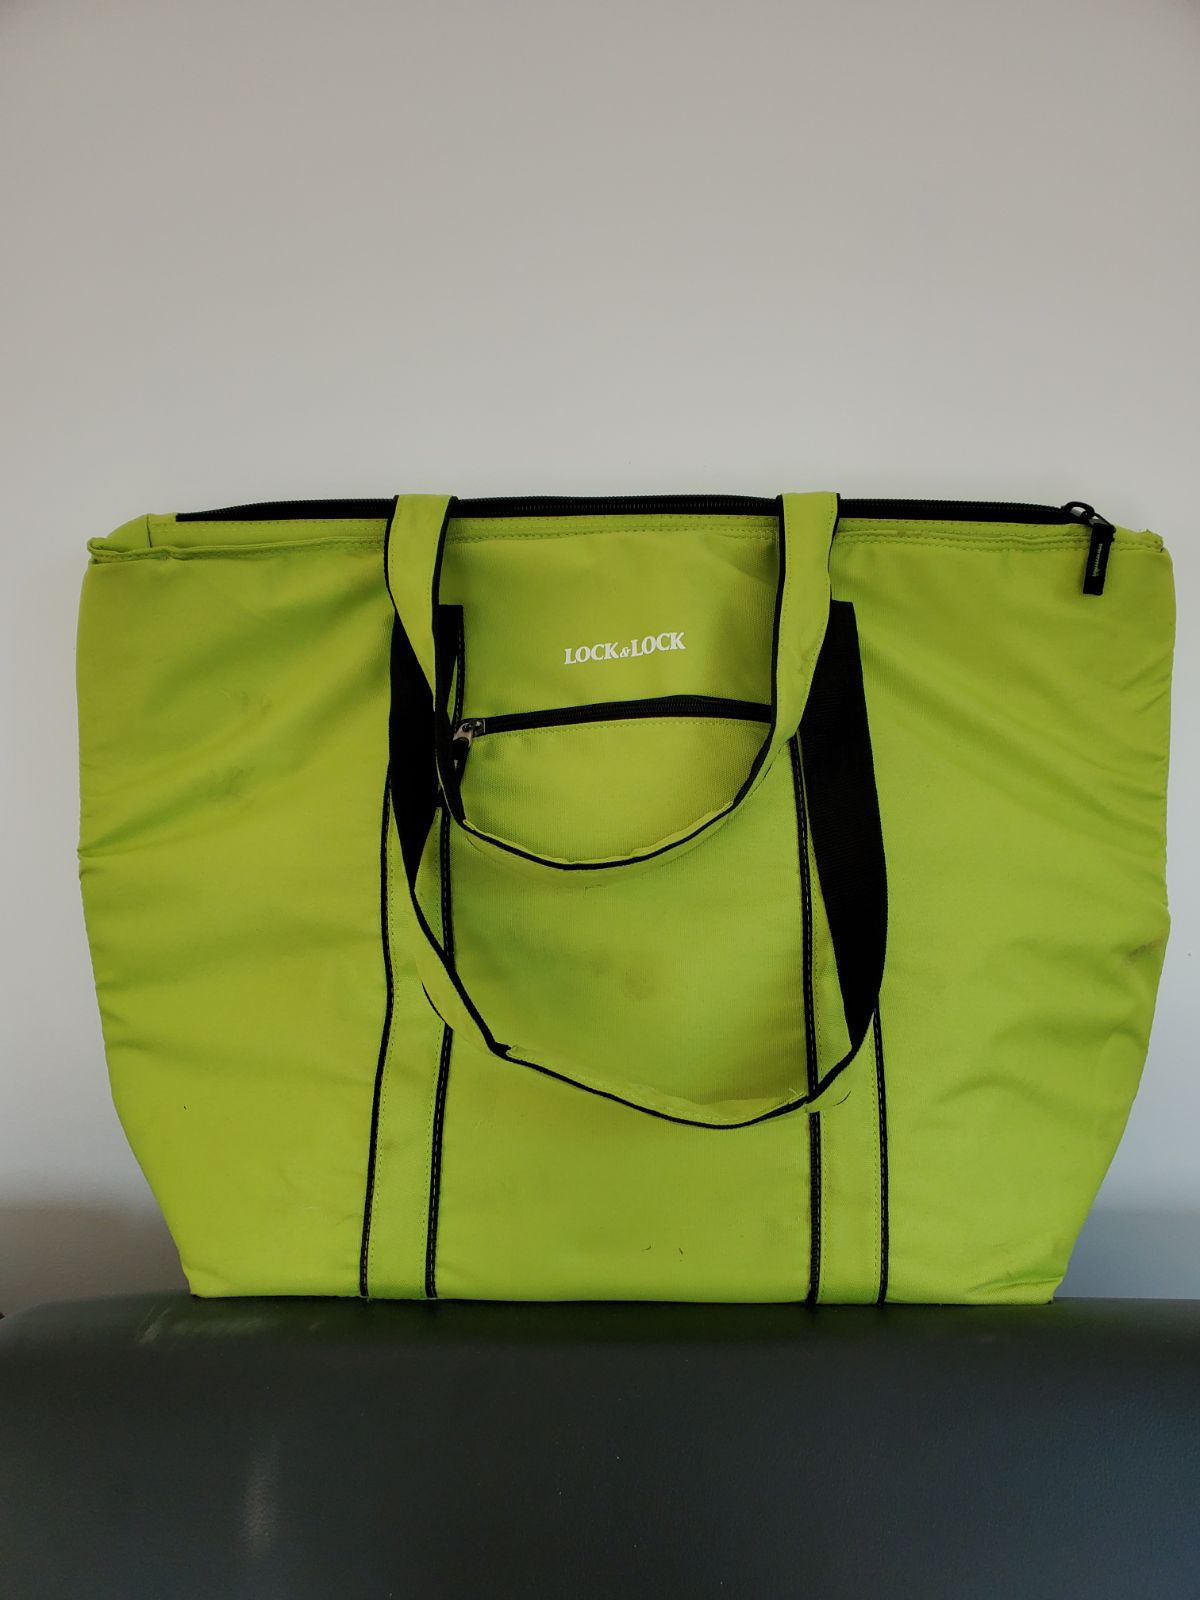 Lock and Lock Insulated cooler Bag